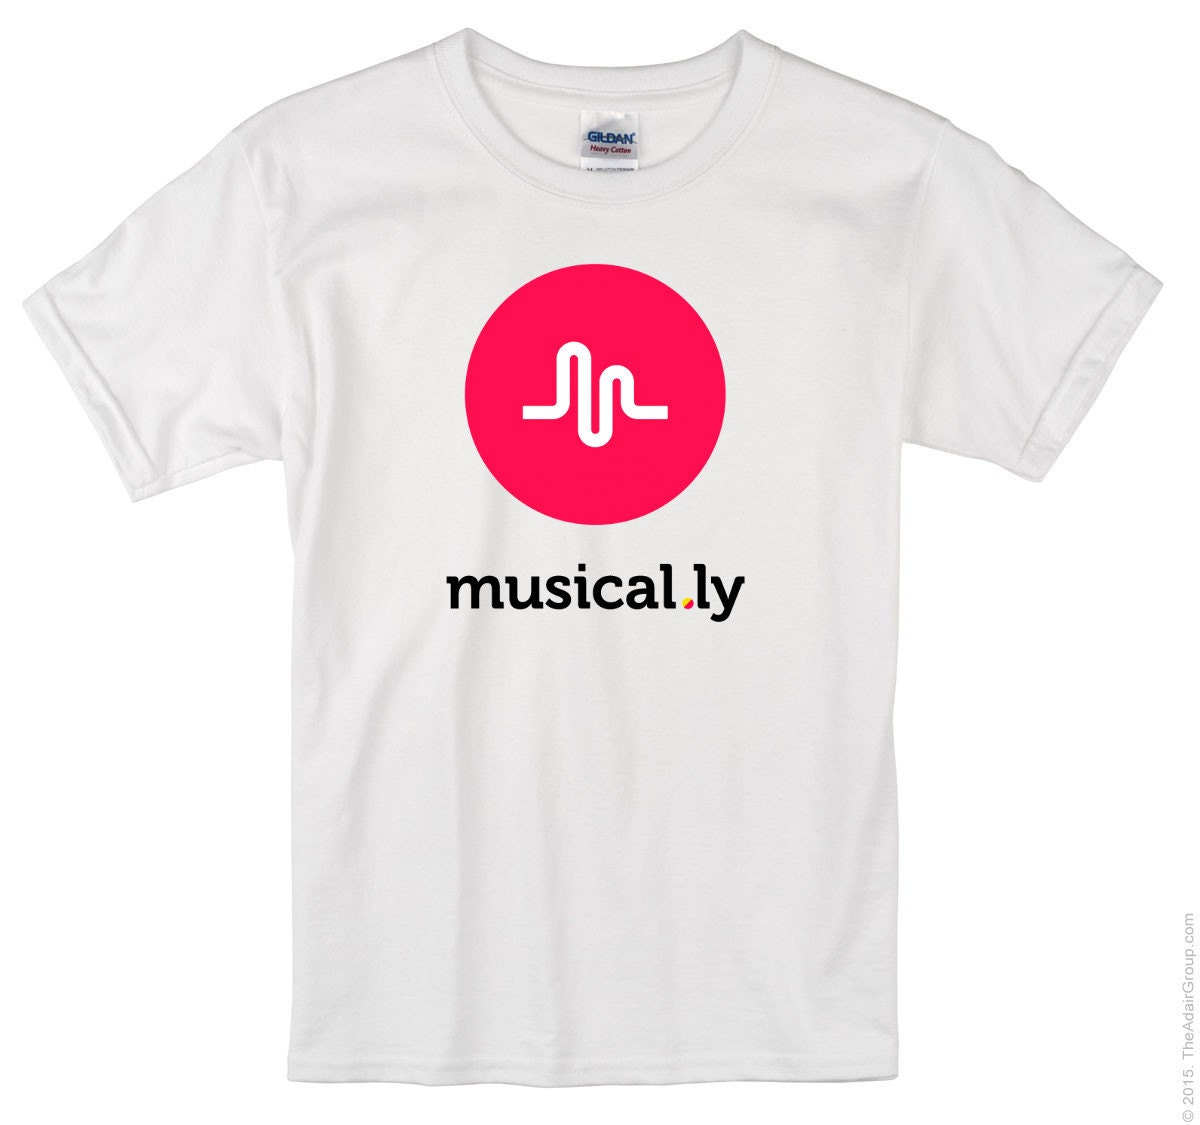 Design your own t-shirt hamilton - Musically Graphic Printed Short Sleeve T Shirt Kids Size Xs S M L Xl T 73